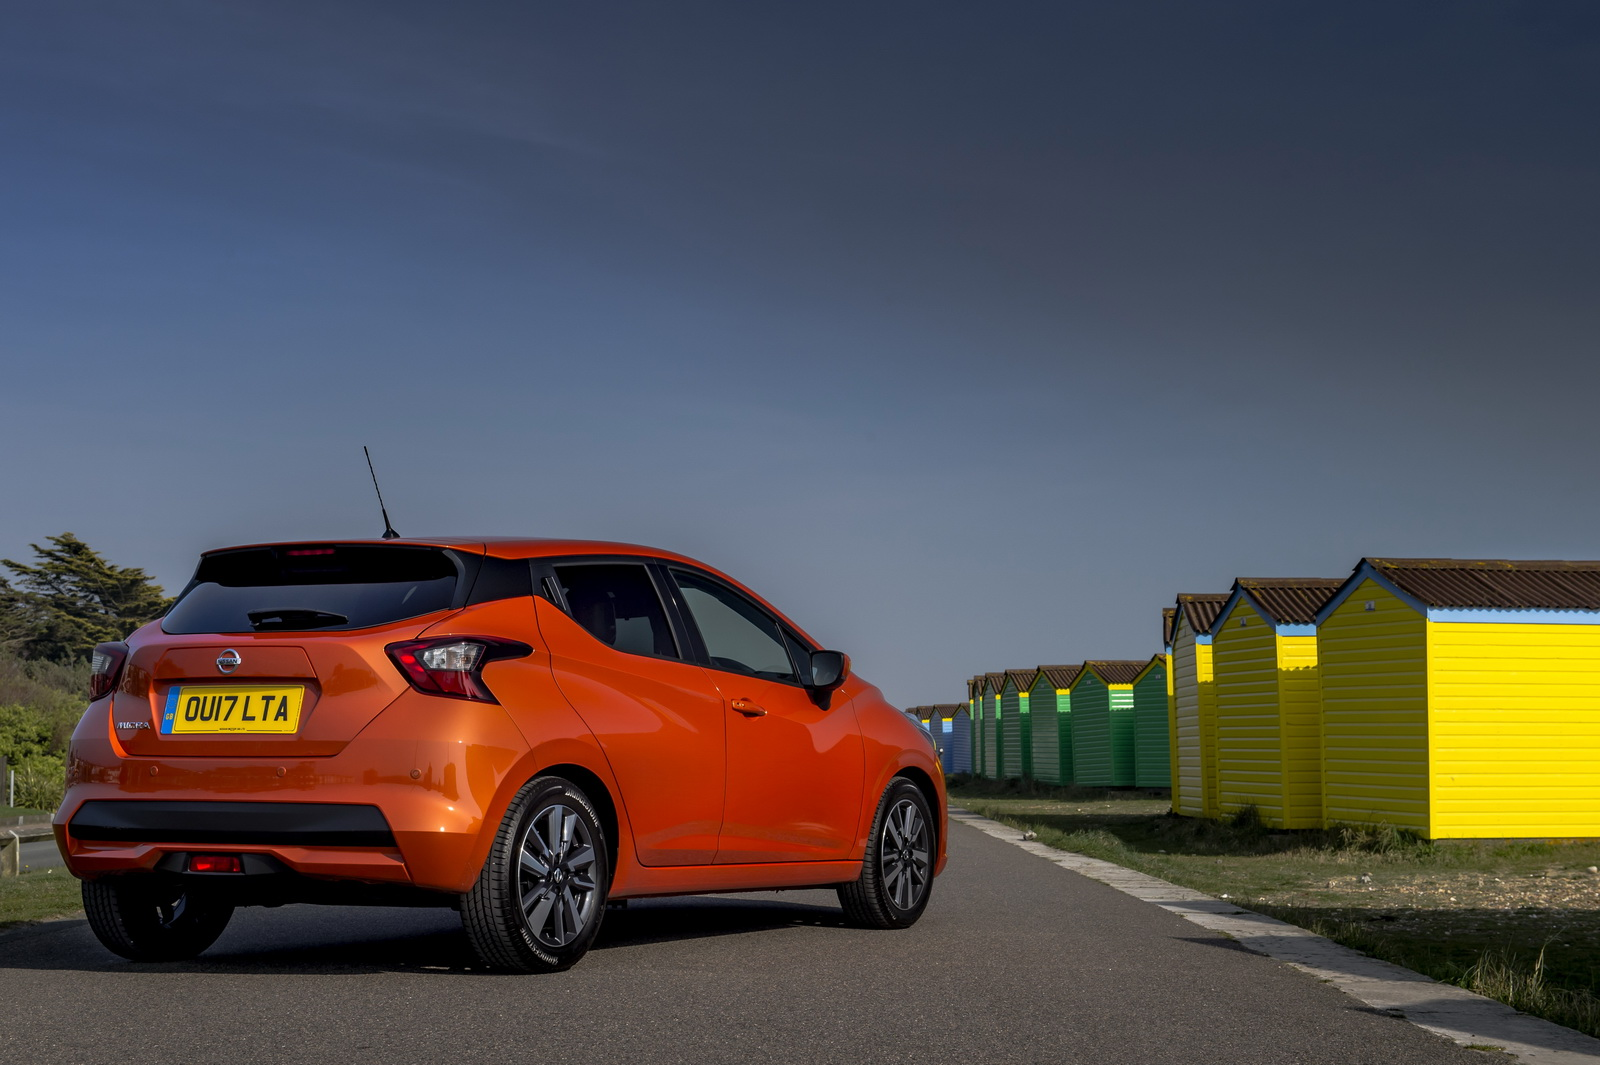 new nissan micra arrives in the uk to challenge the fiesta 74 pics. Black Bedroom Furniture Sets. Home Design Ideas